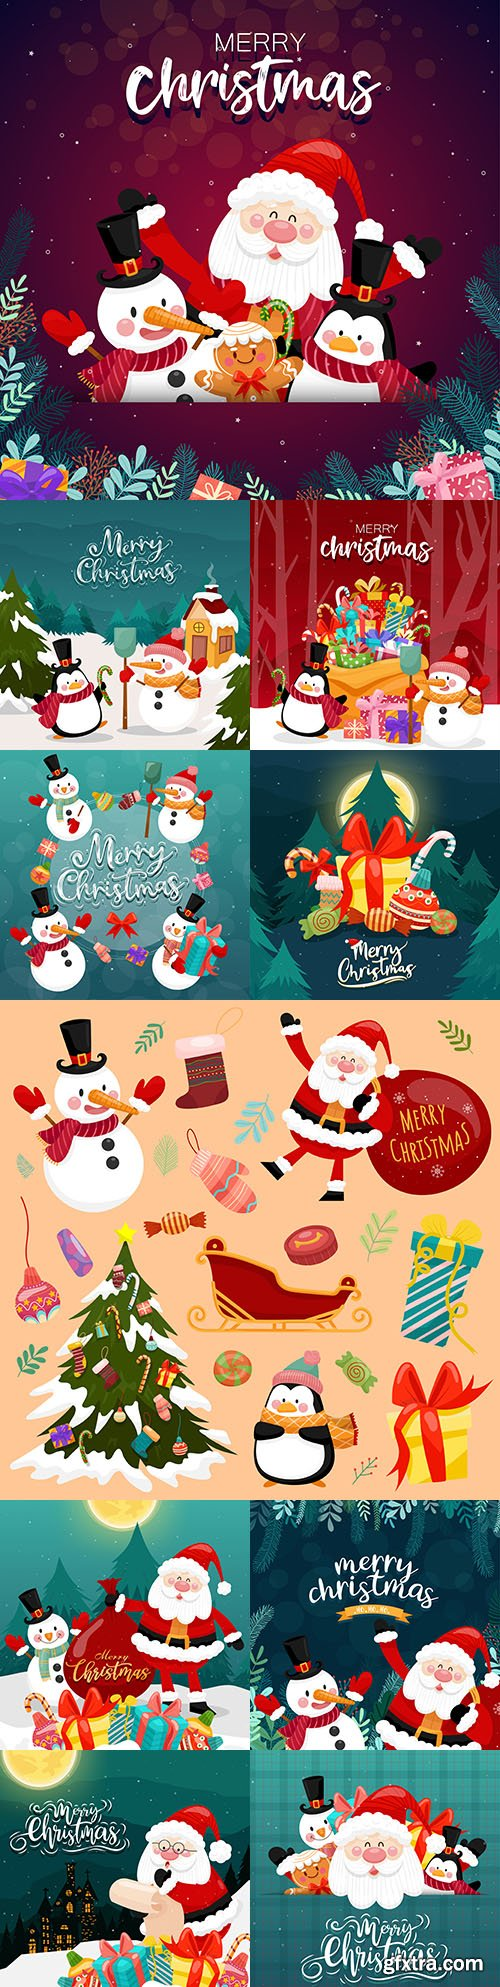 Merry Christmas card with Santa Claus and gift box